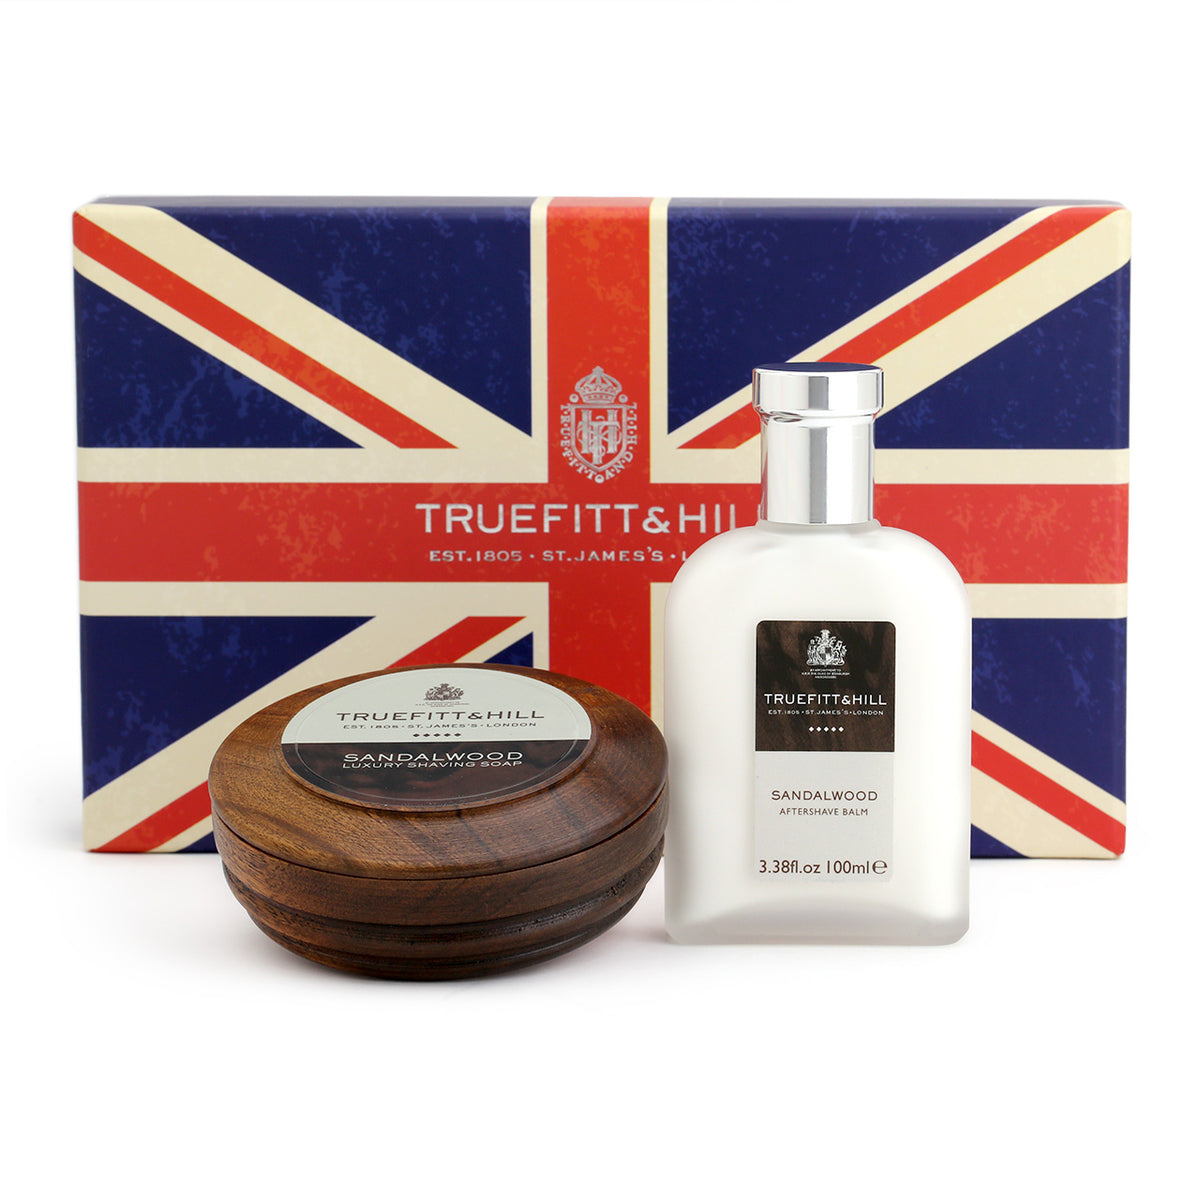 Truefitt & Hill 2 piece gift set - Sandalwood Luxury Shaving Soap in a Wooden Bowl, and Aftershave Balm